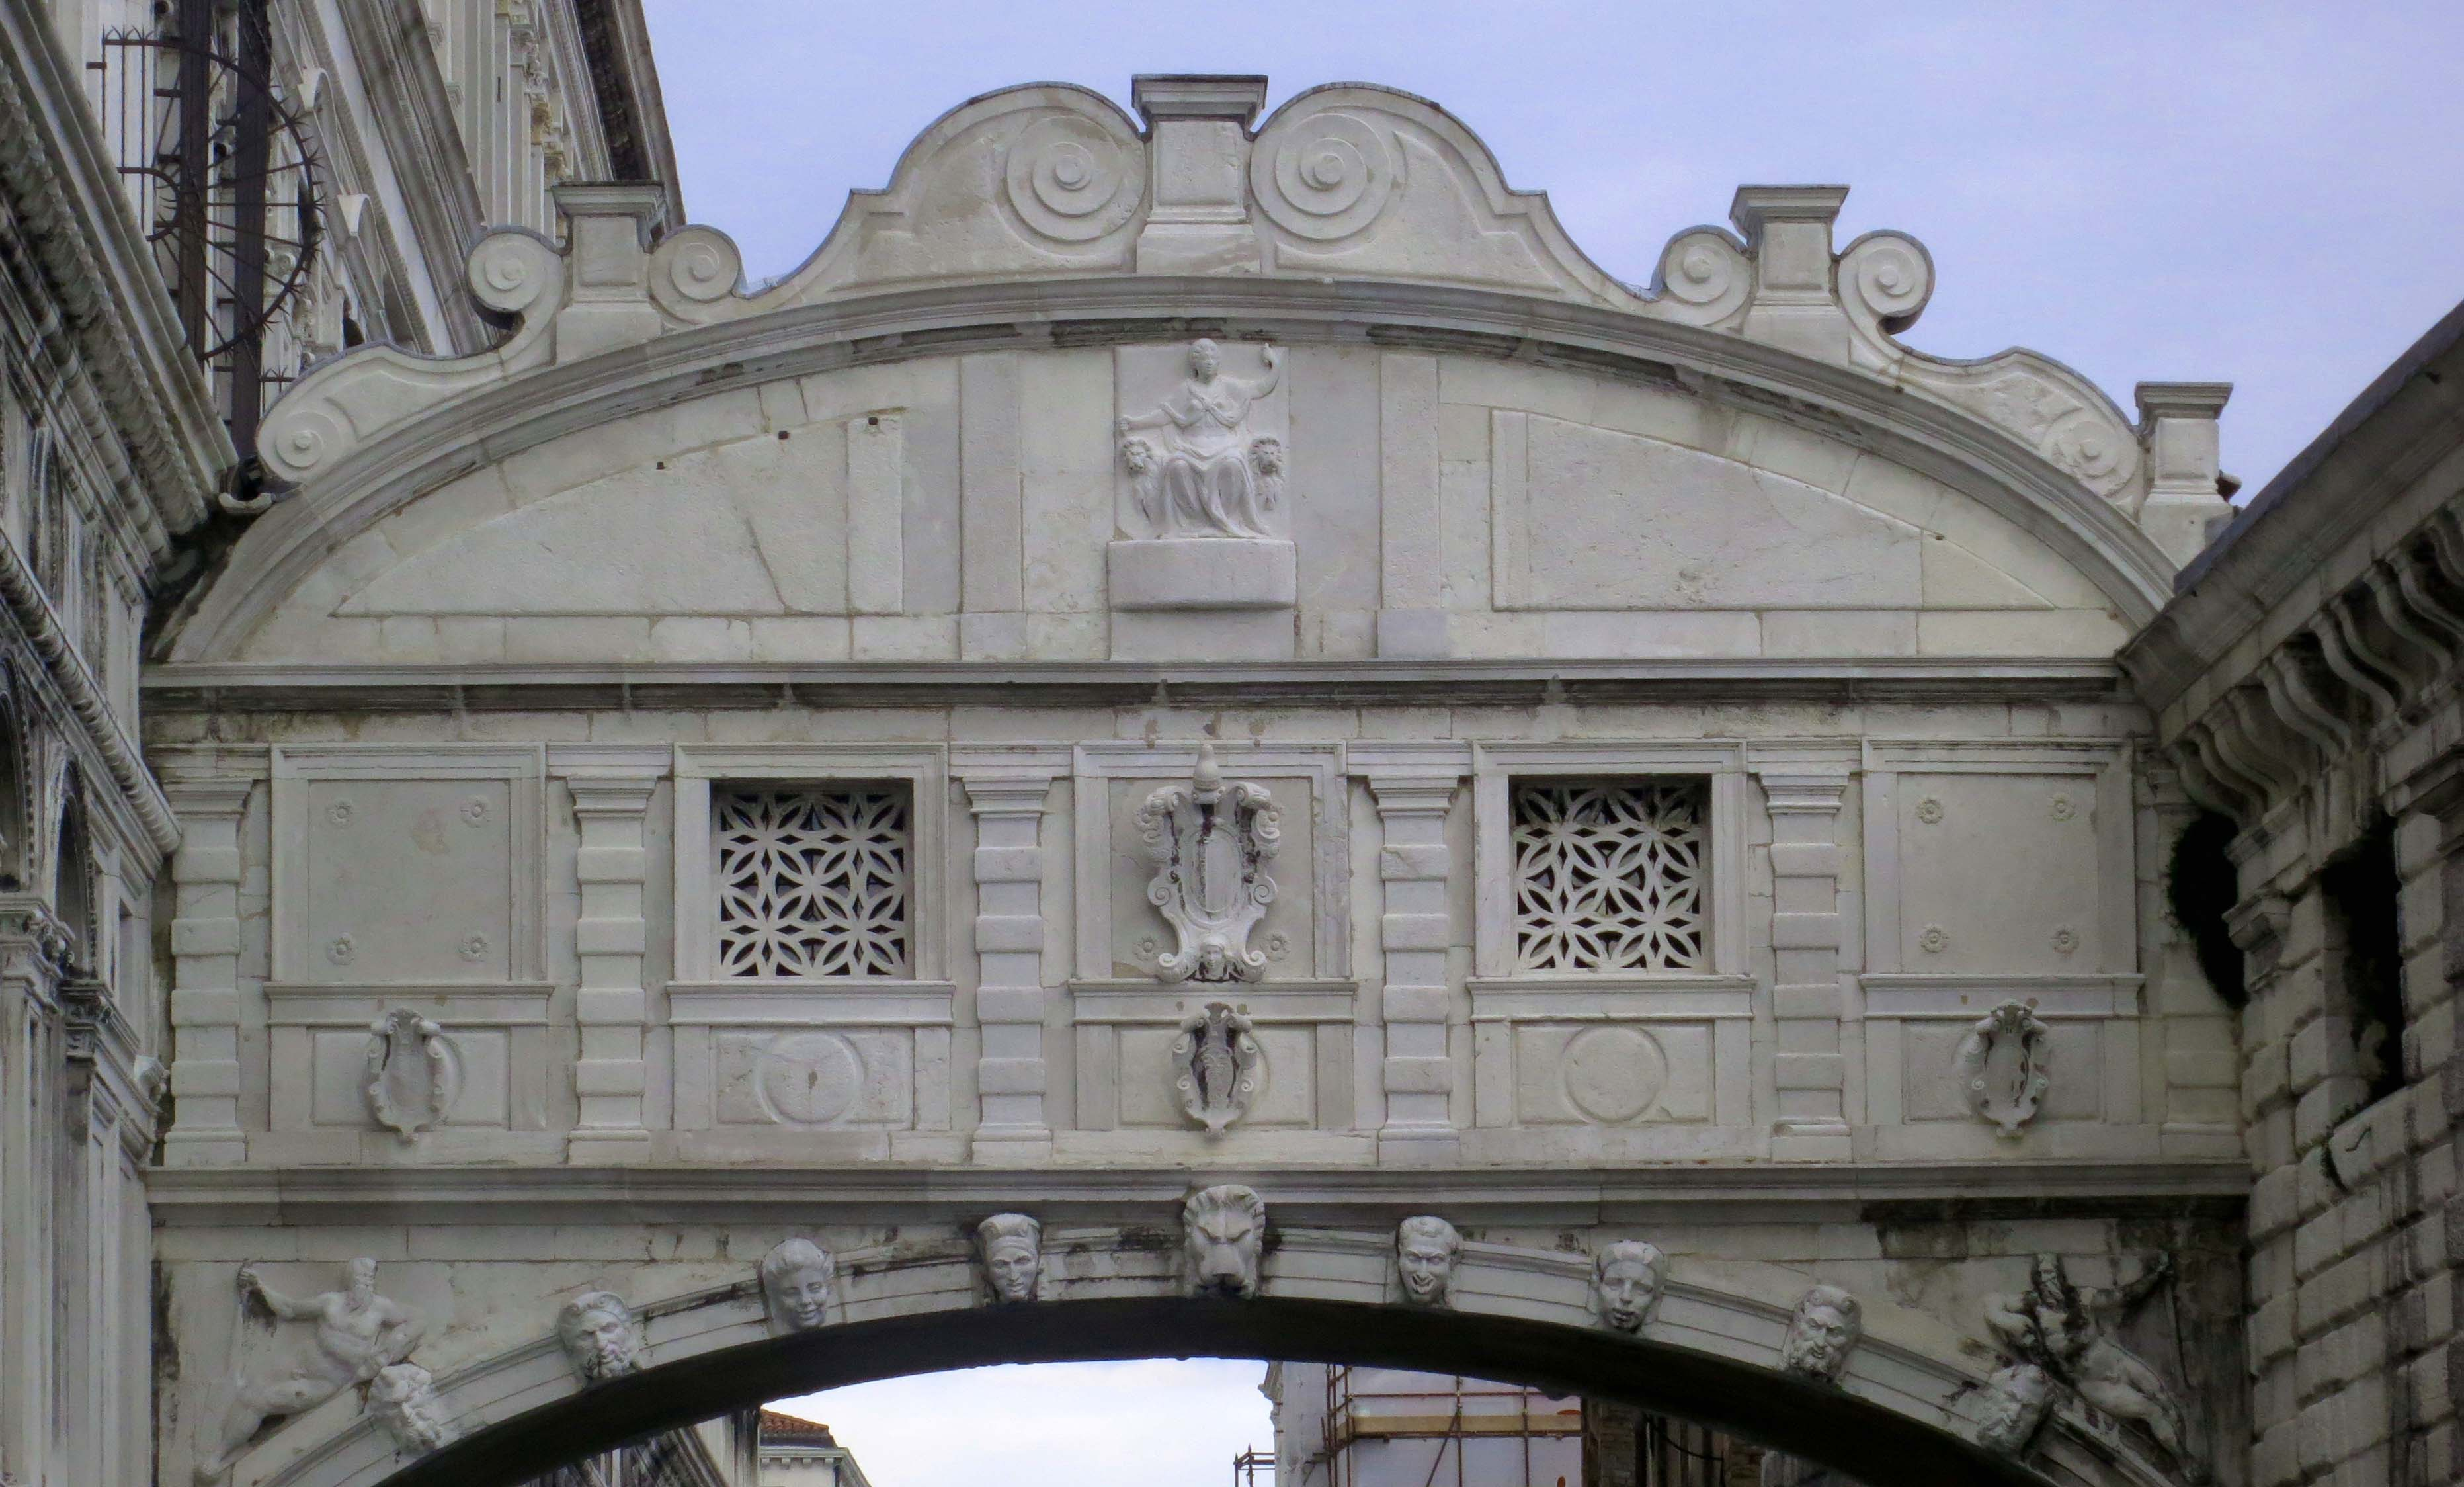 The Bridge of Sighs was so named because prisoners, condemned in the Doge's Palace, could have their last look at freedom as they crossed the bridge from the Palace to the prison. Everybody who is anybody and has visited Venice has stopped for this view.